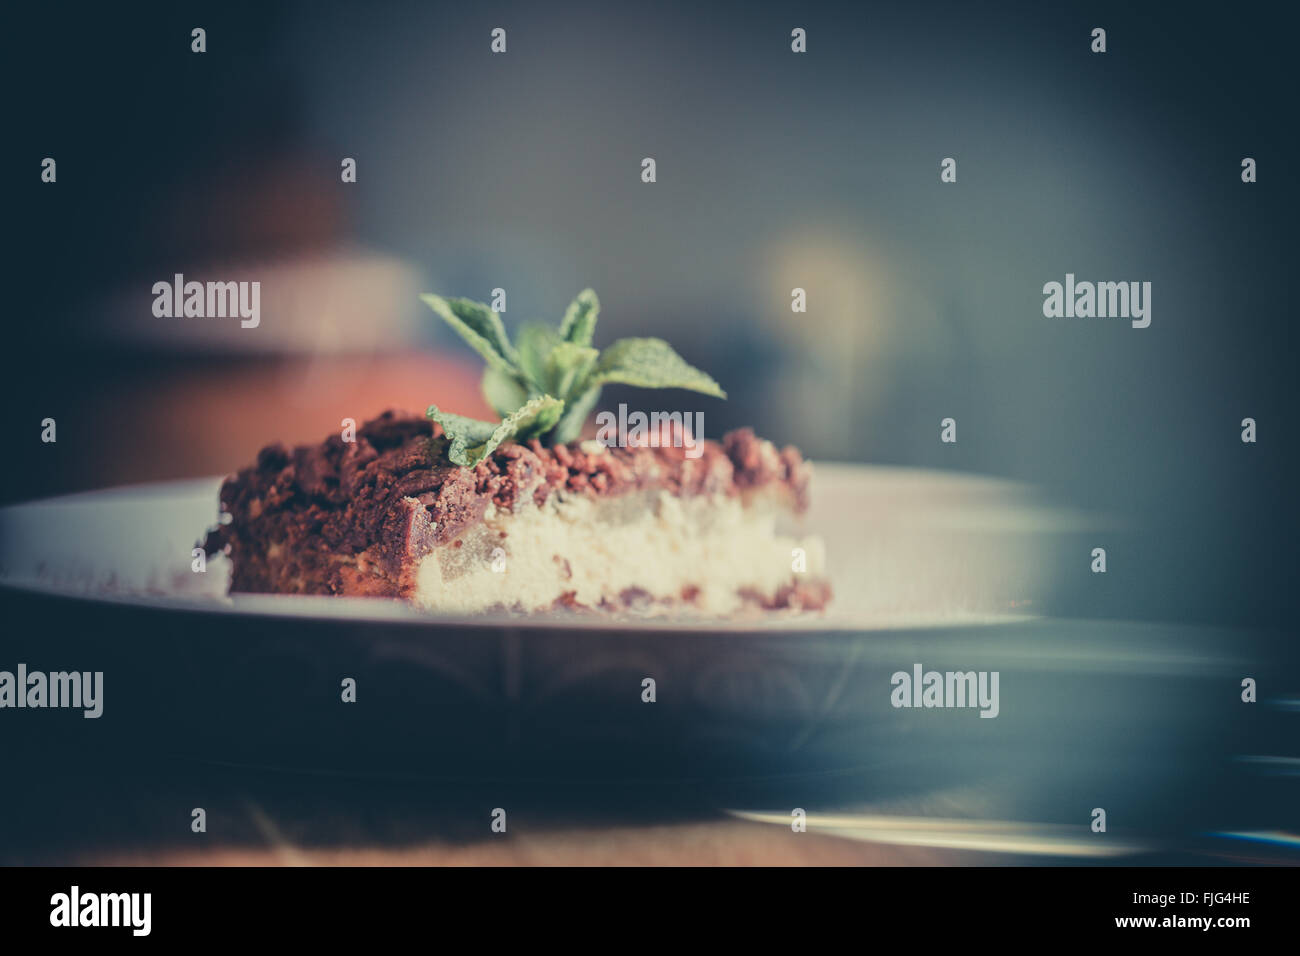 Food Cake Bake Cheesecake Plate Sweet - Stock Image